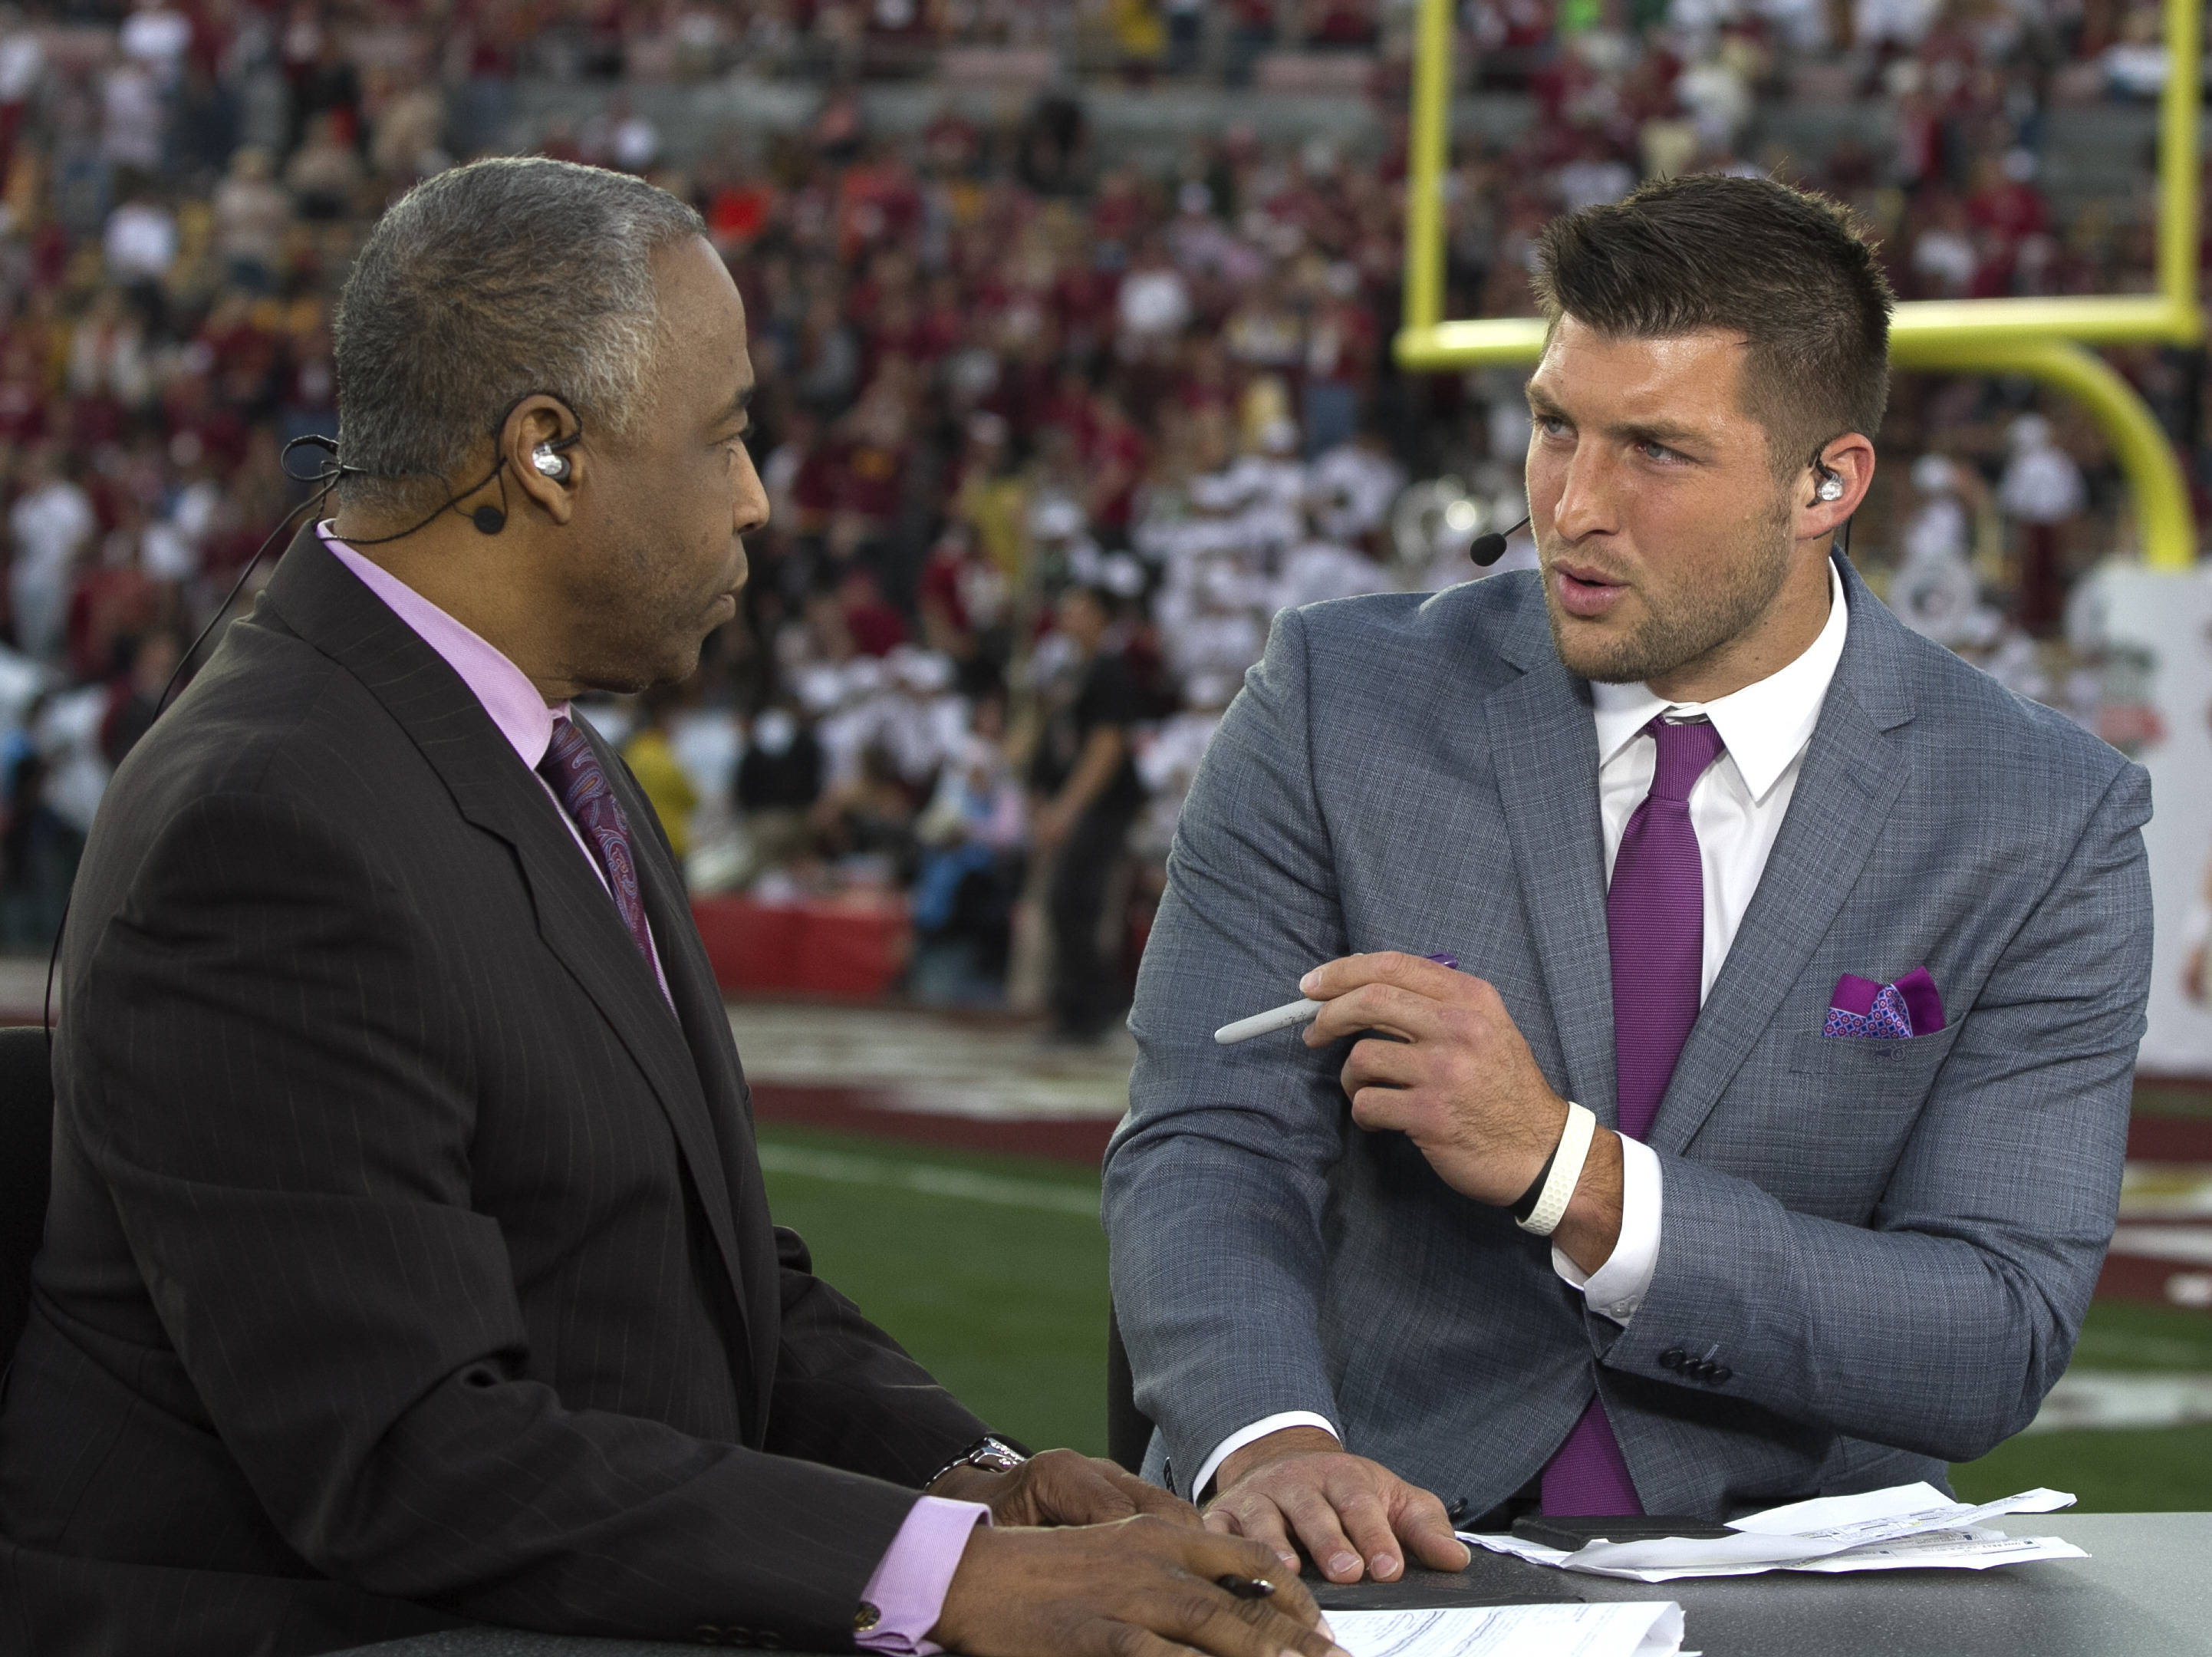 Announcers Jon Saunders and former Florida Gator Great Tim Tebow, BCS Championship, FSU vs Auburn, Rose Bowl, Pasadena, CA,  1-06-14,  (Photo by Steve Musco)